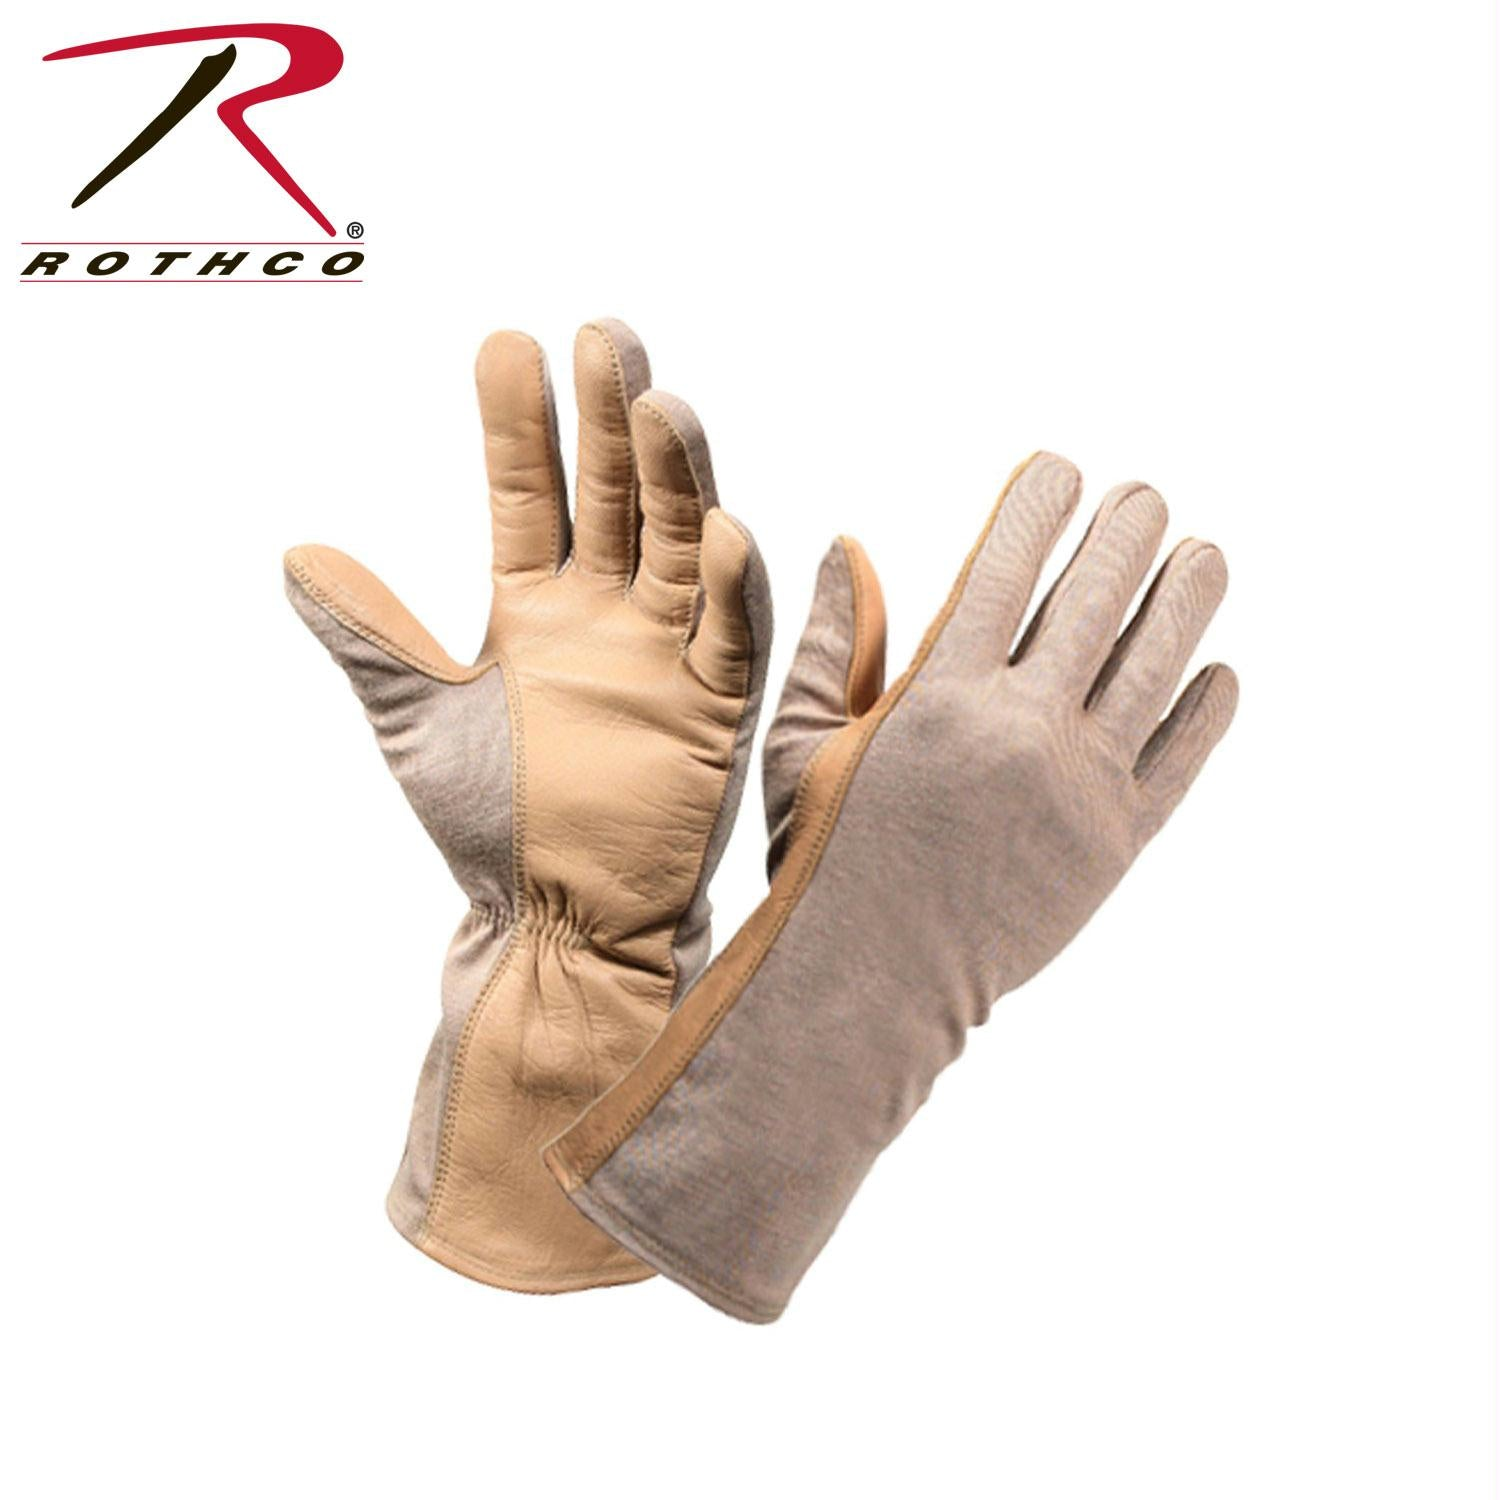 Rothco G.I. Type Flame & Heat Resistant Flight Gloves - Desert Sand / 7